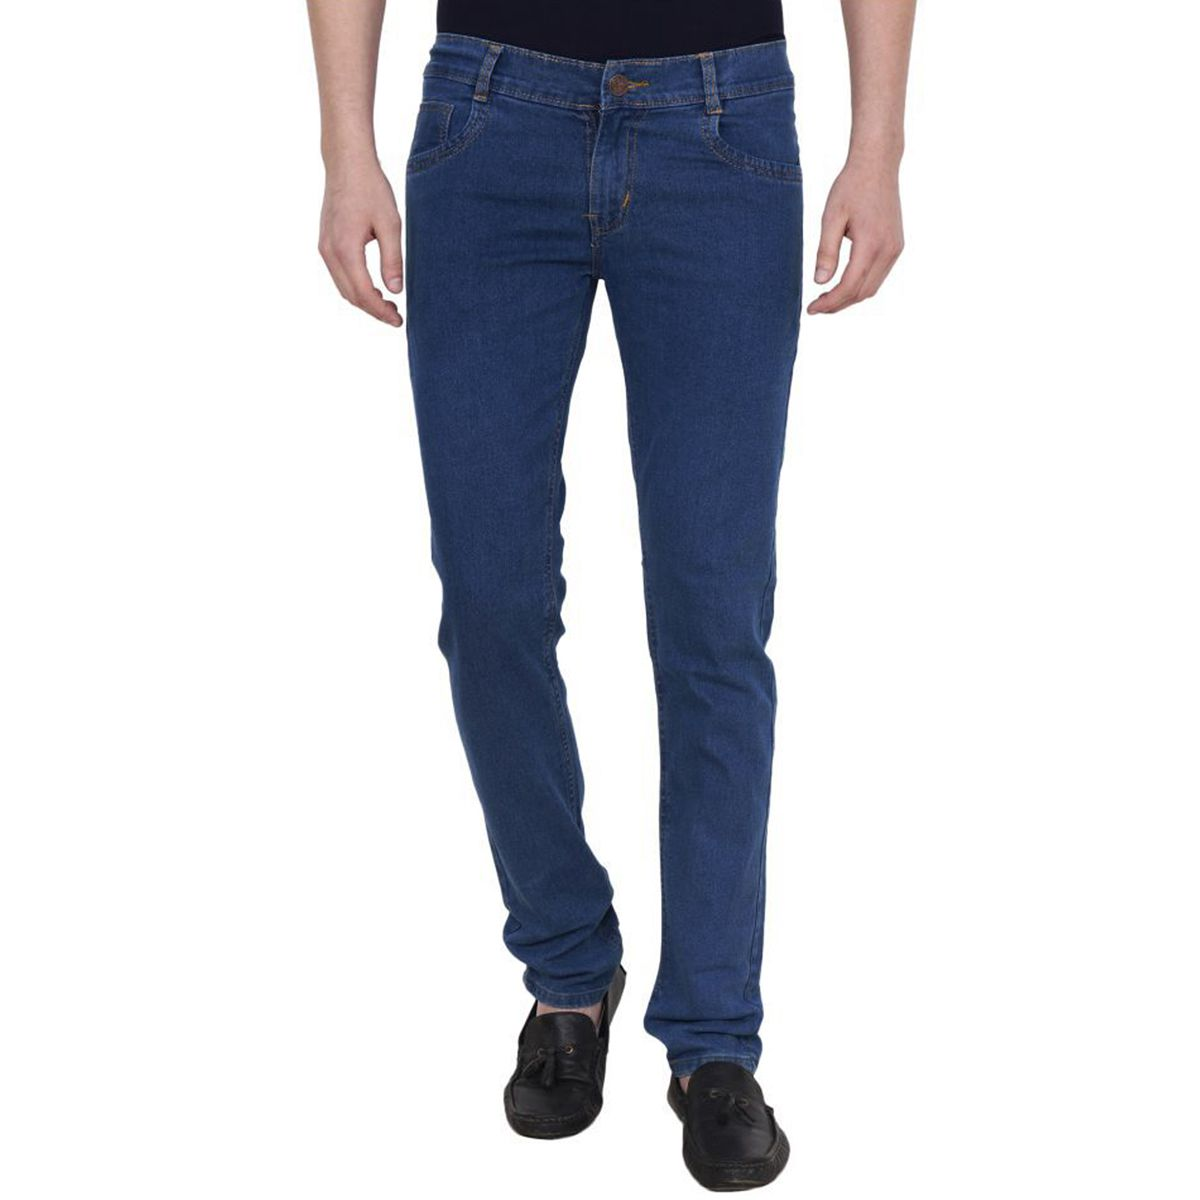 Masterly weft Blue Slim Jeans